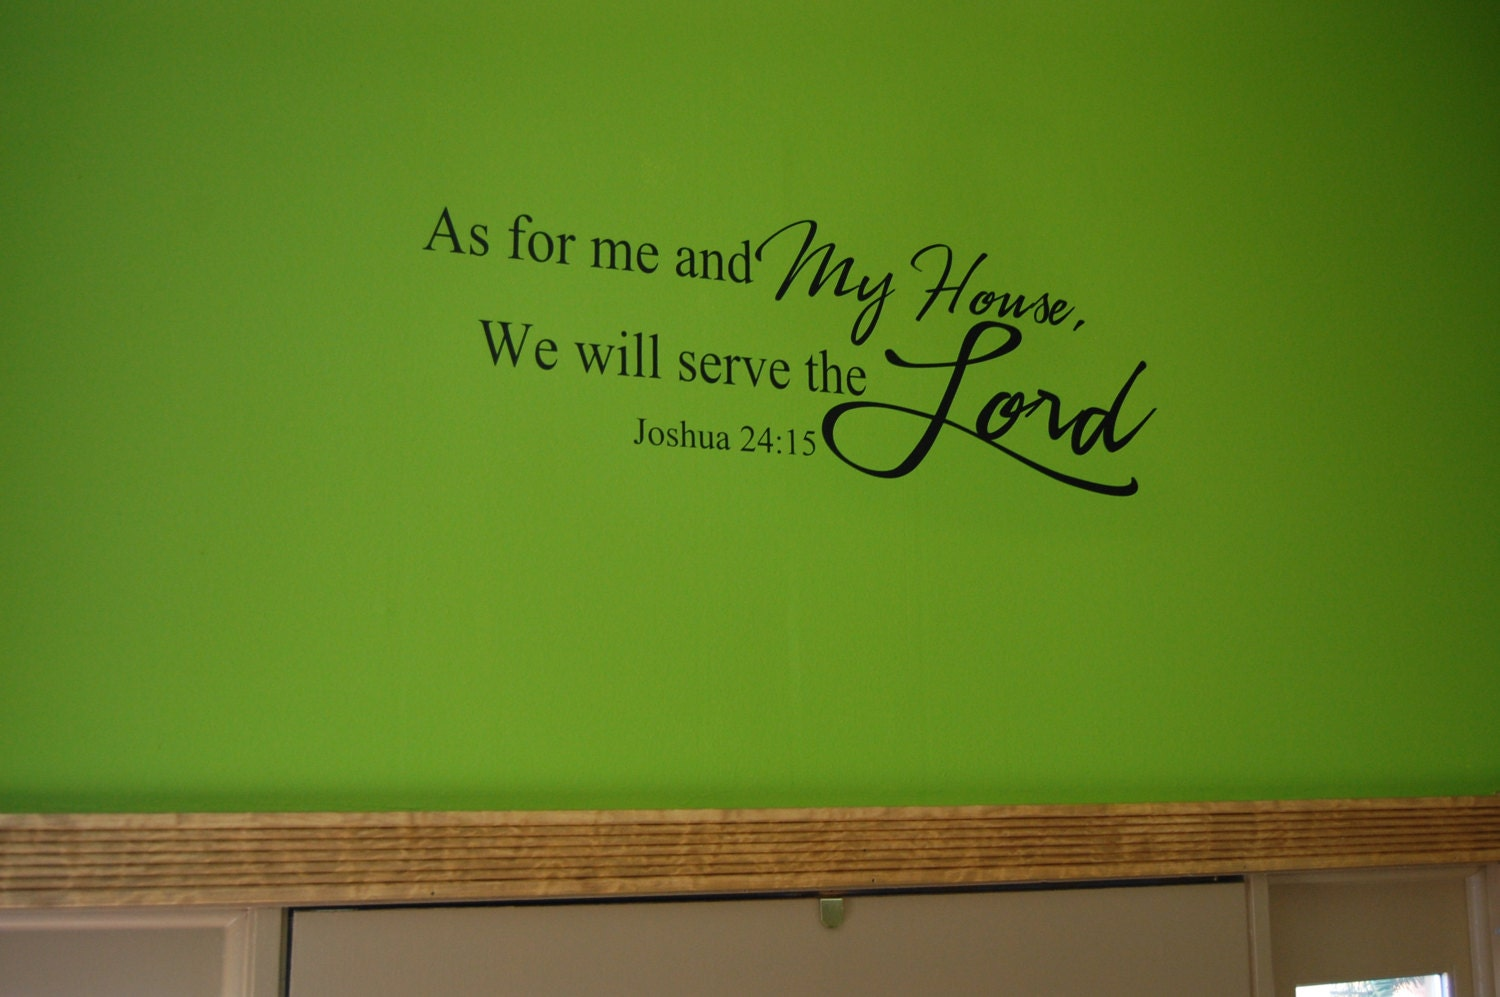 Laundry Room Quotes For Walls Fair Bible Verse Wall Decal Family Quote Decal Laundry Room Design Inspiration